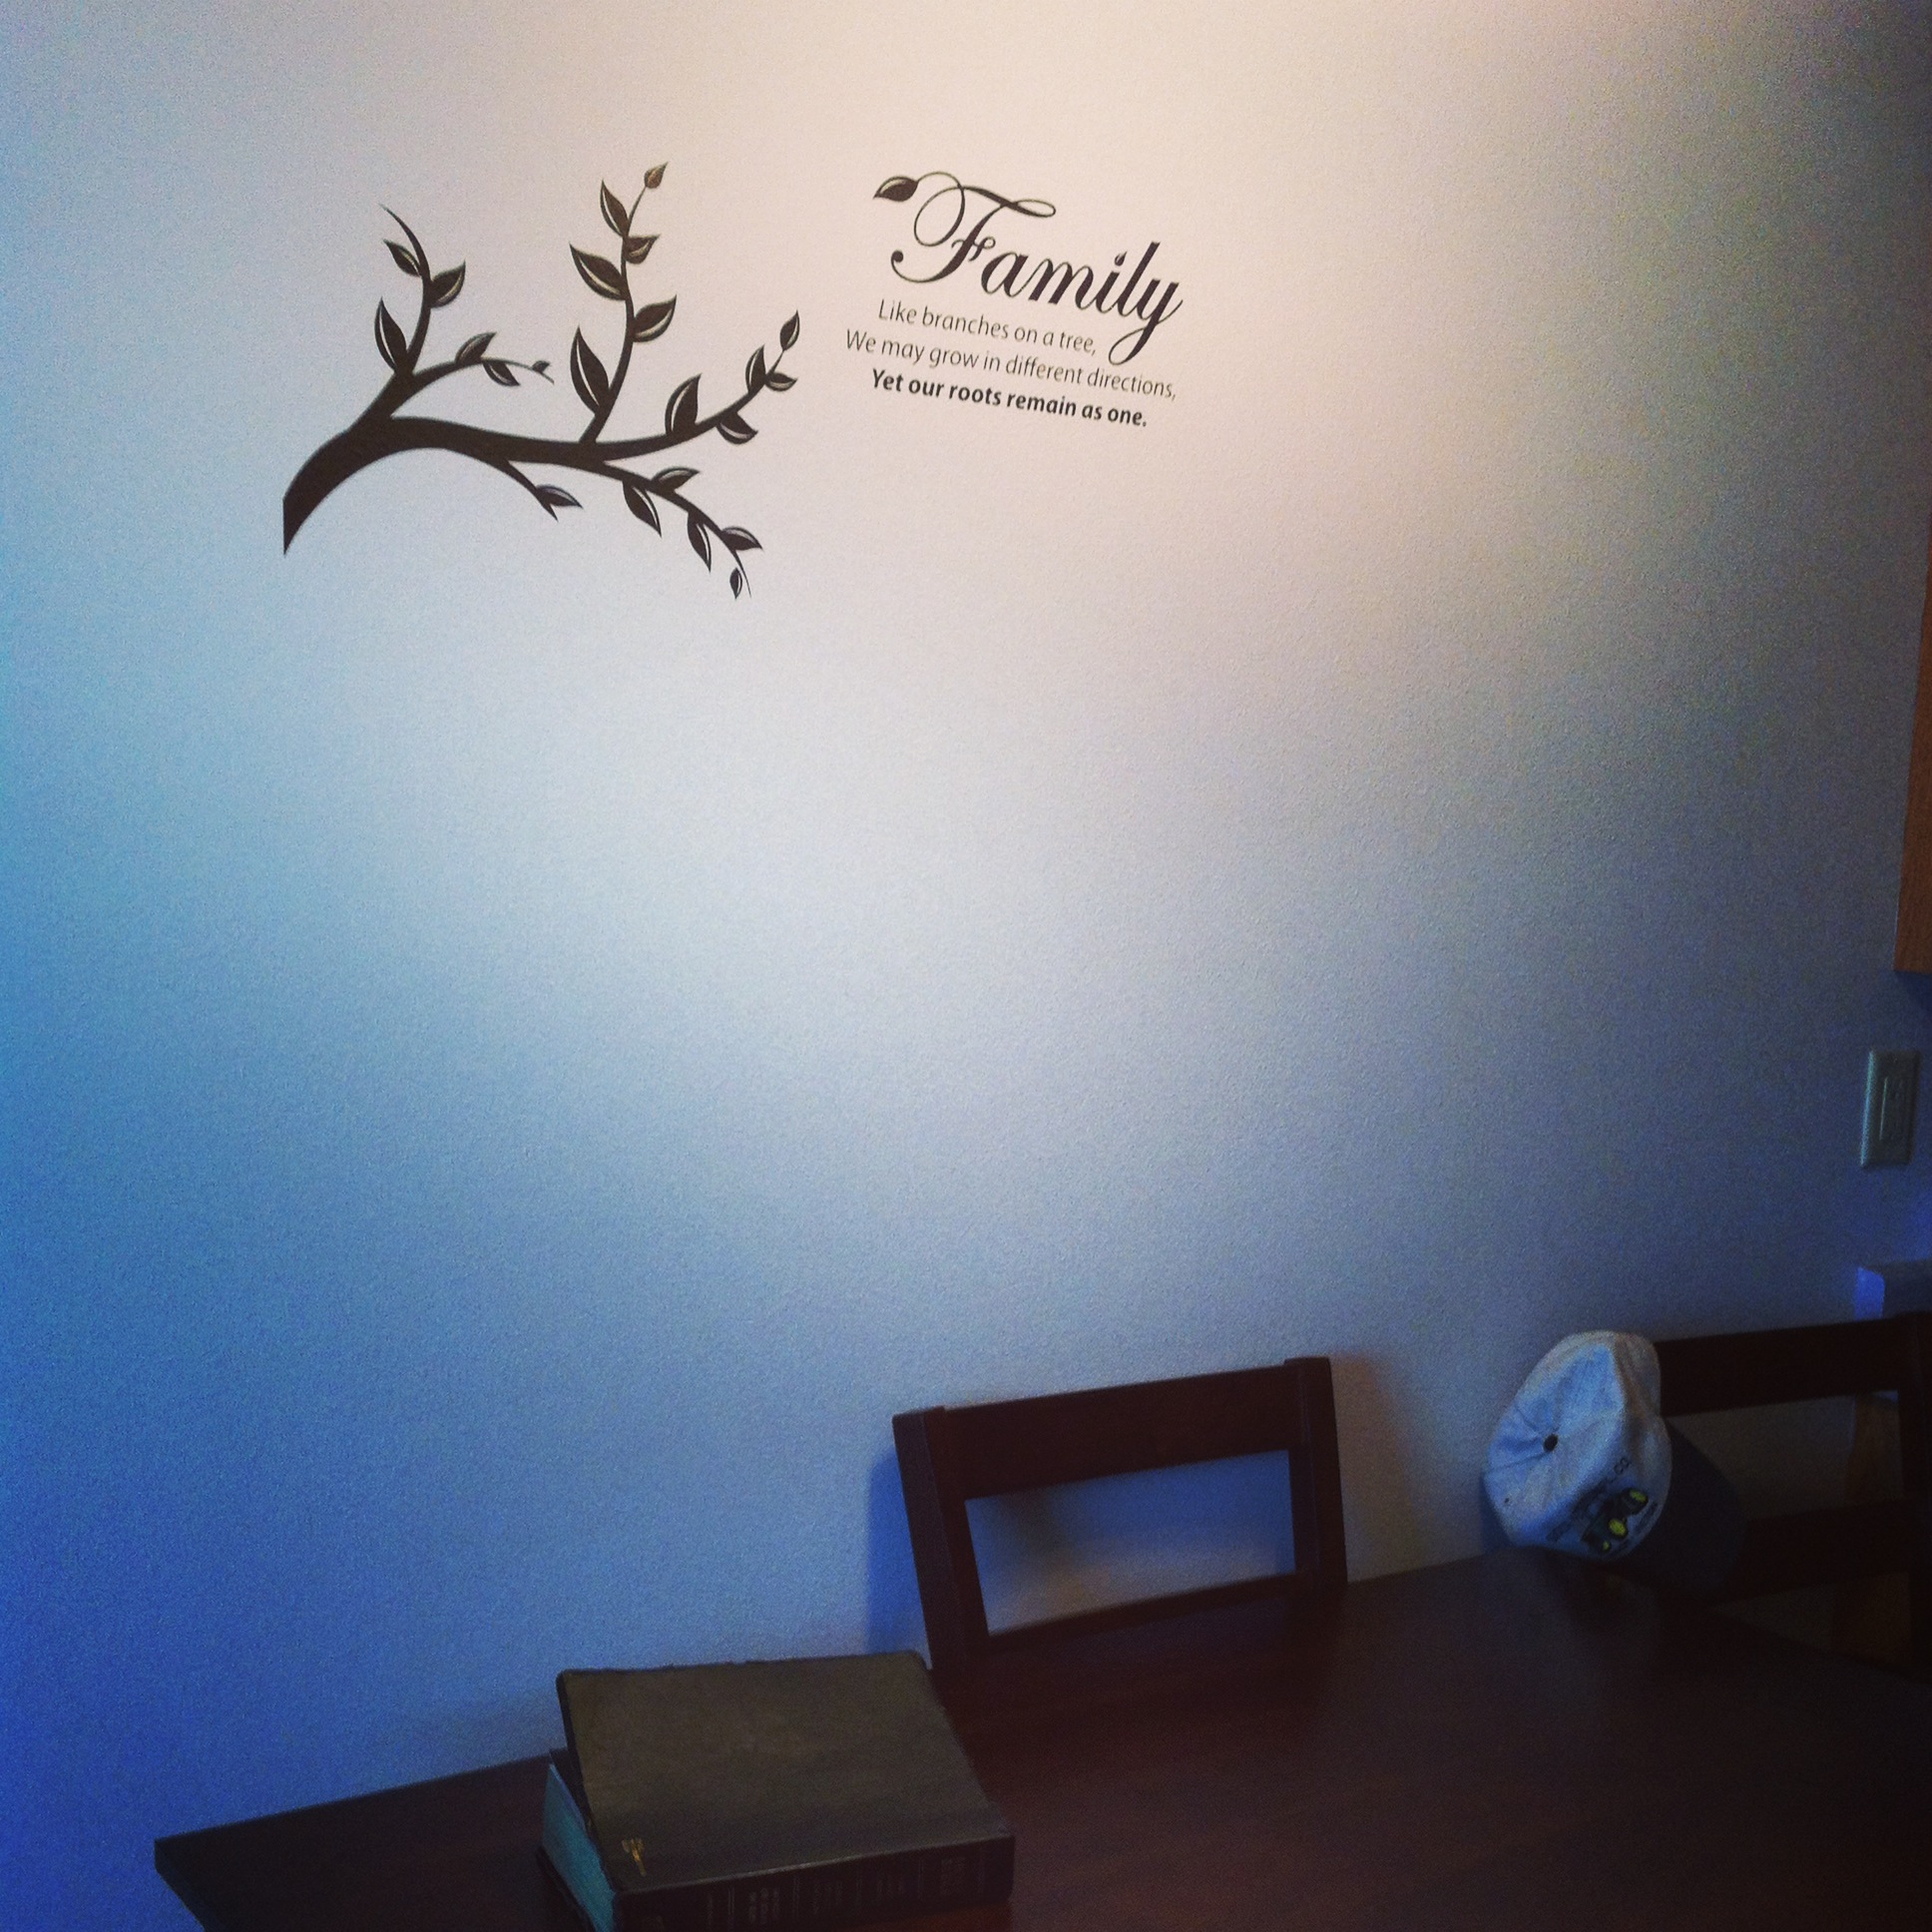 3 Tips For Finding The Right Space For A Wall Decal Wall Decor